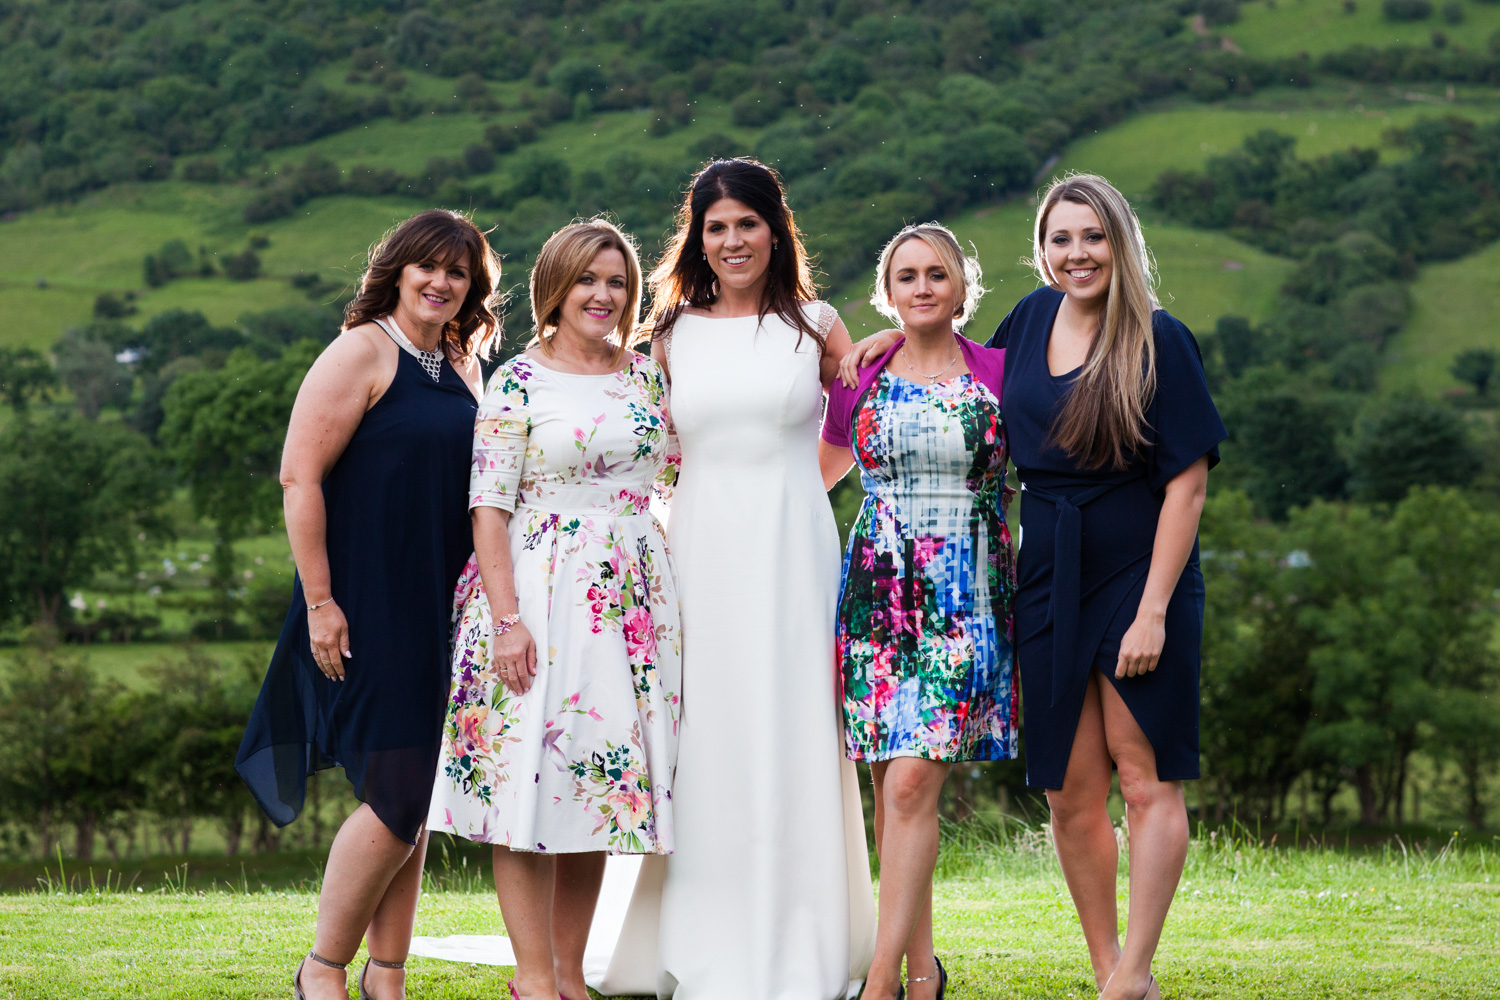 Mark_Barnes_Northern_Ireland_wedding_photographer_Kilmore_House_Wedding_photography_Kilmore_House_wedding_photographer-67.jpg